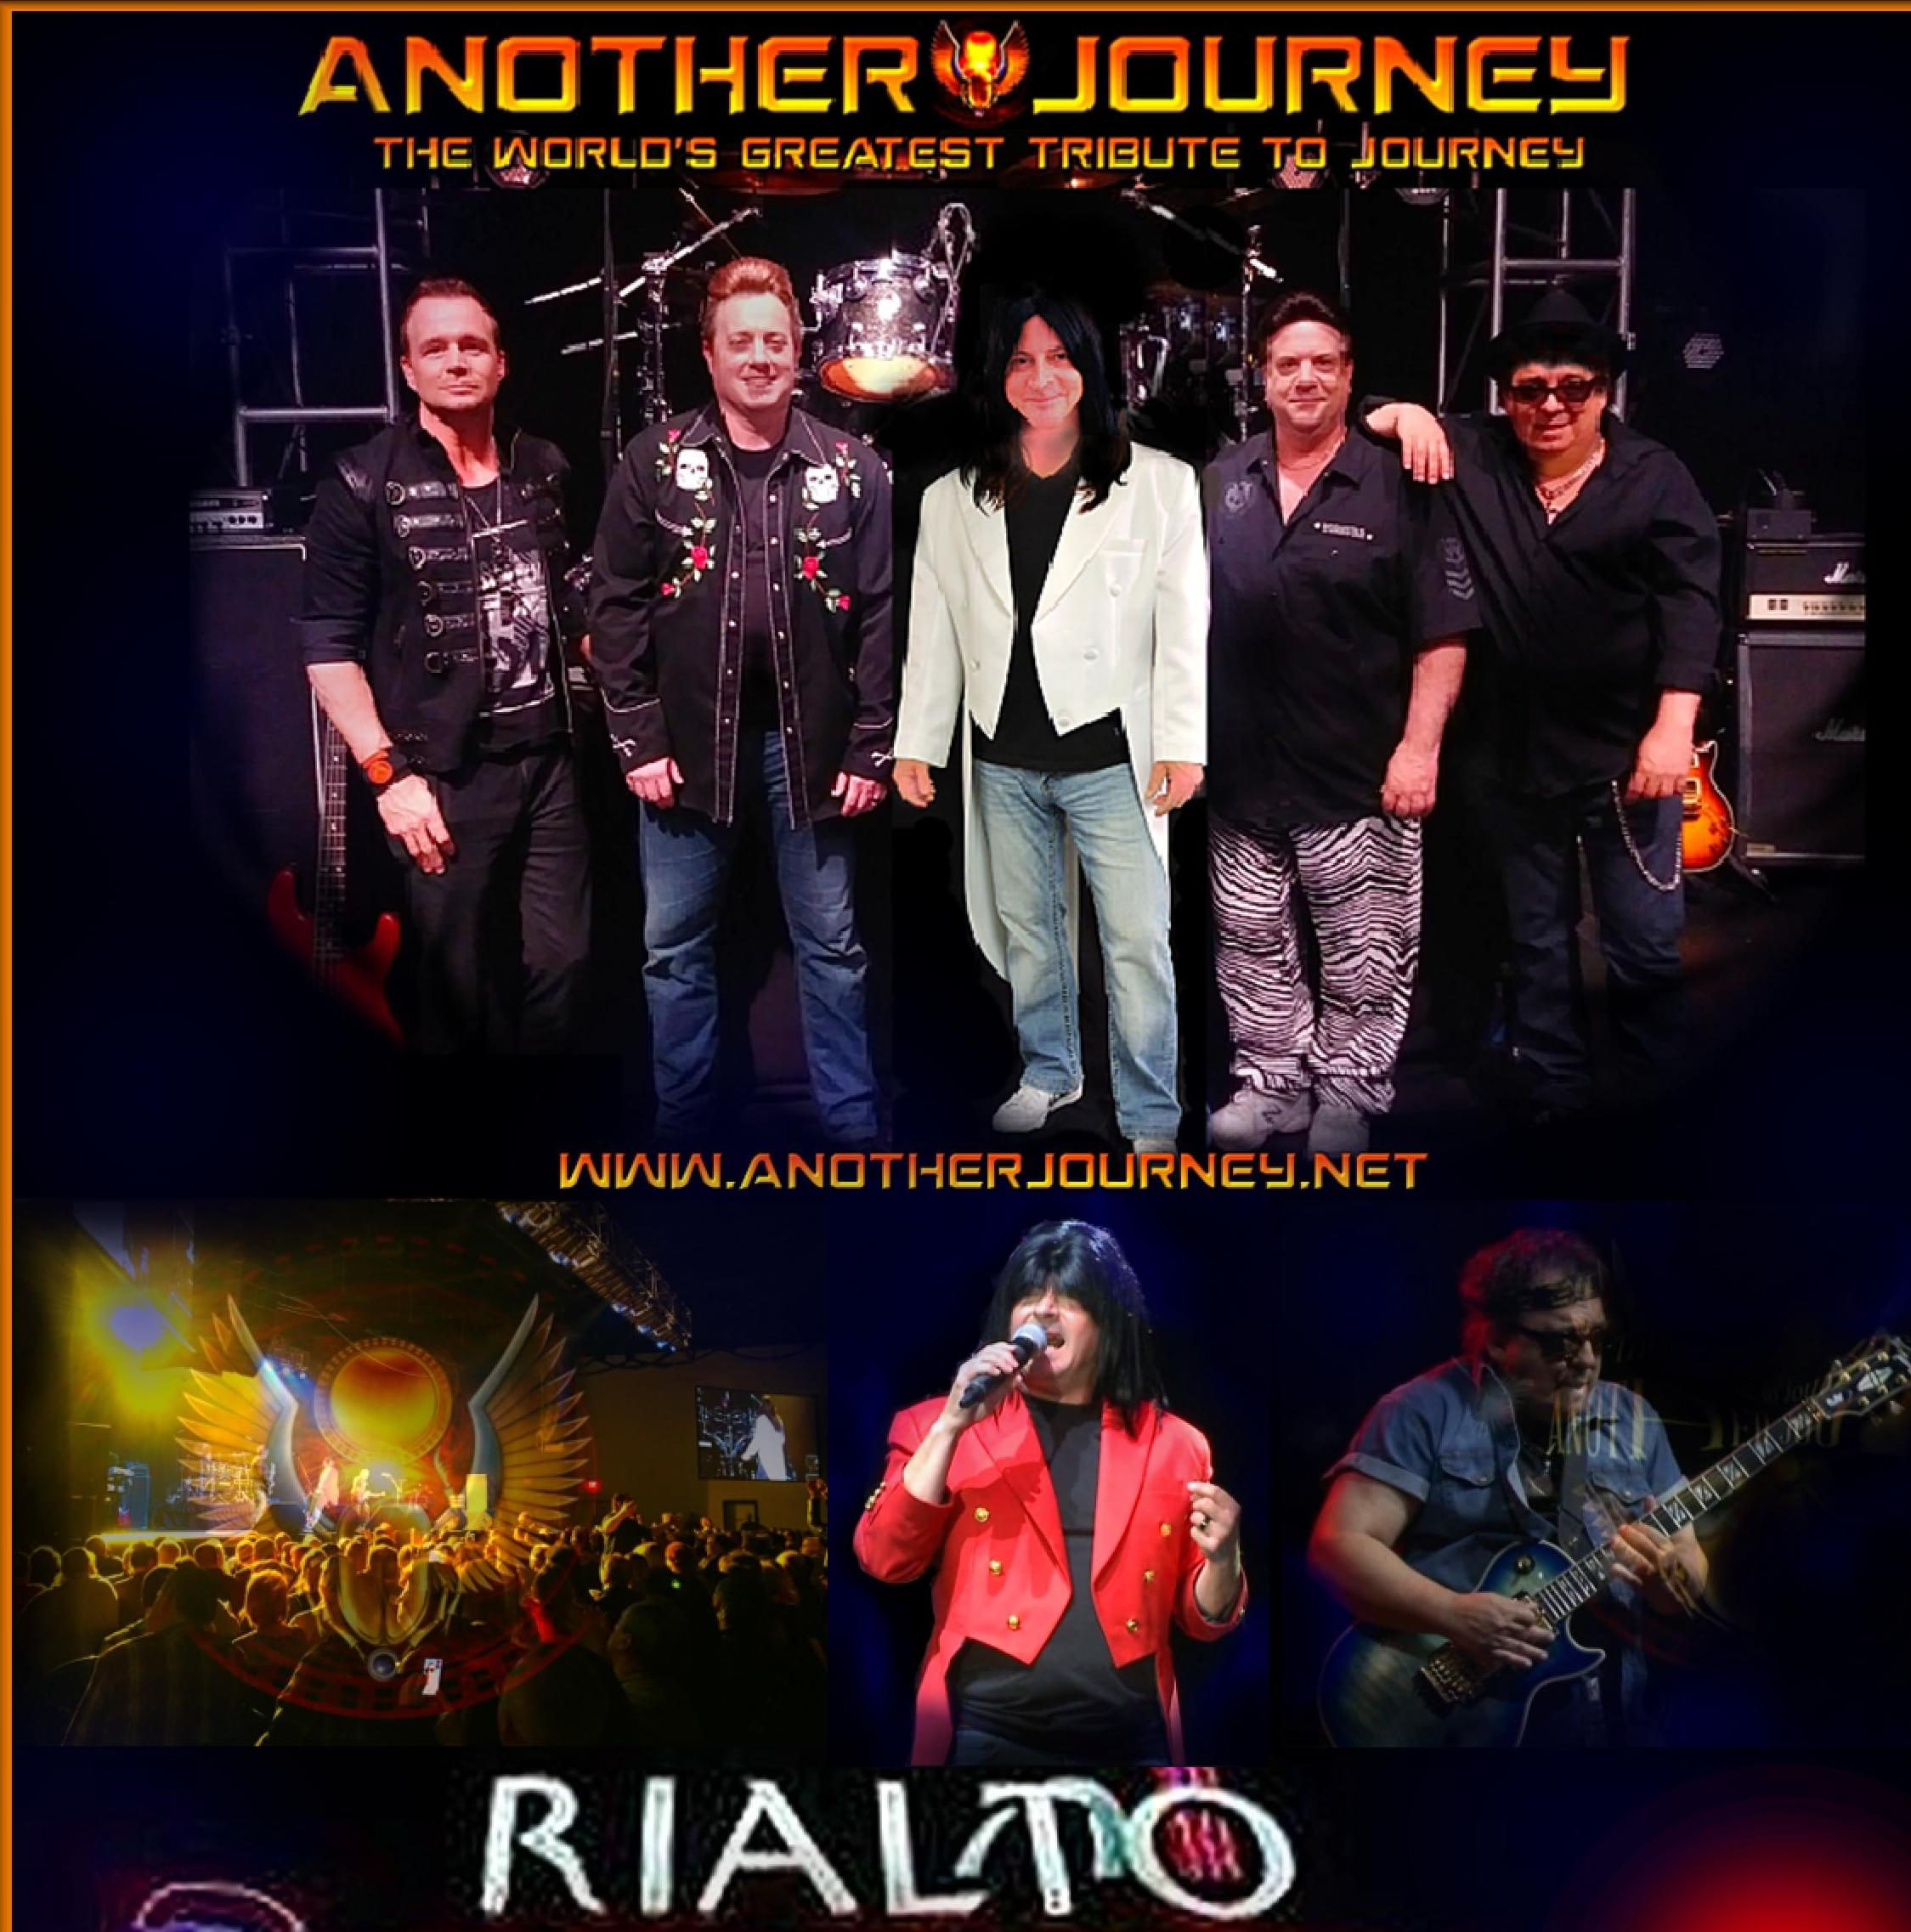 8/9: Another Journey at Rialto Theatre